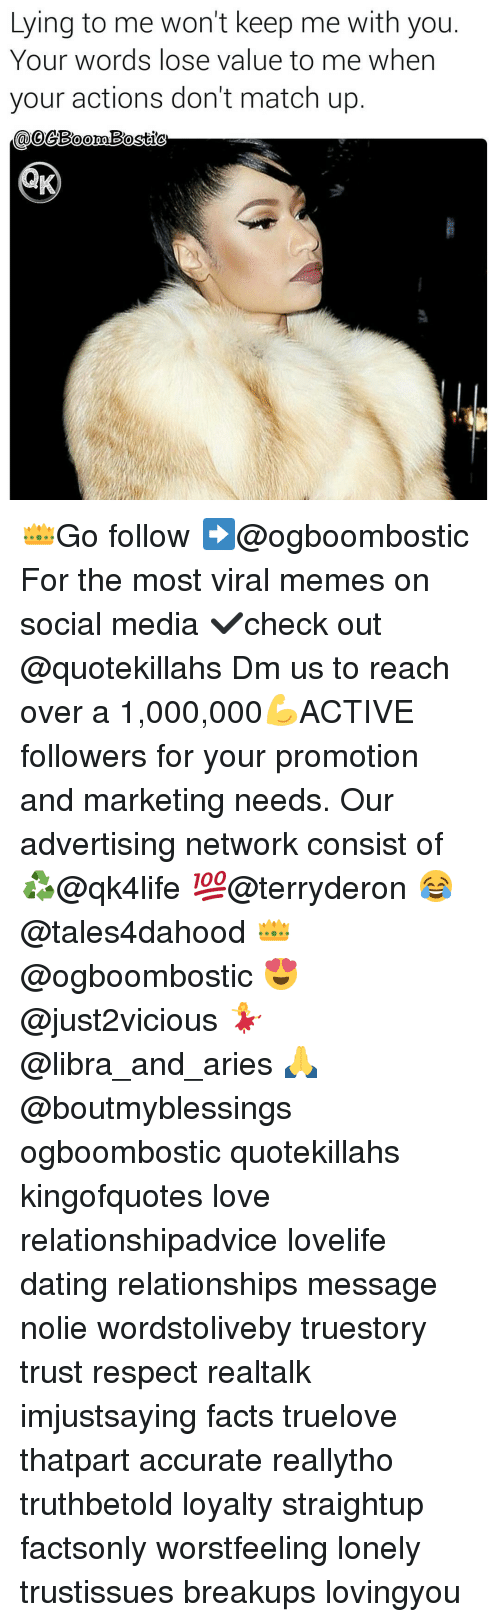 match up: Lying to me won't keep me with you  Your words lose value to me when  your actions don't match up  oo 👑Go follow ➡@ogboombostic For the most viral memes on social media ✔check out @quotekillahs Dm us to reach over a 1,000,000💪ACTIVE followers for your promotion and marketing needs. Our advertising network consist of ♻@qk4life 💯@terryderon 😂@tales4dahood 👑@ogboombostic 😍@just2vicious 💃@libra_and_aries 🙏@boutmyblessings ogboombostic quotekillahs kingofquotes love relationshipadvice lovelife dating relationships message nolie wordstoliveby truestory trust respect realtalk imjustsaying facts truelove thatpart accurate reallytho truthbetold loyalty straightup factsonly worstfeeling lonely trustissues breakups lovingyou